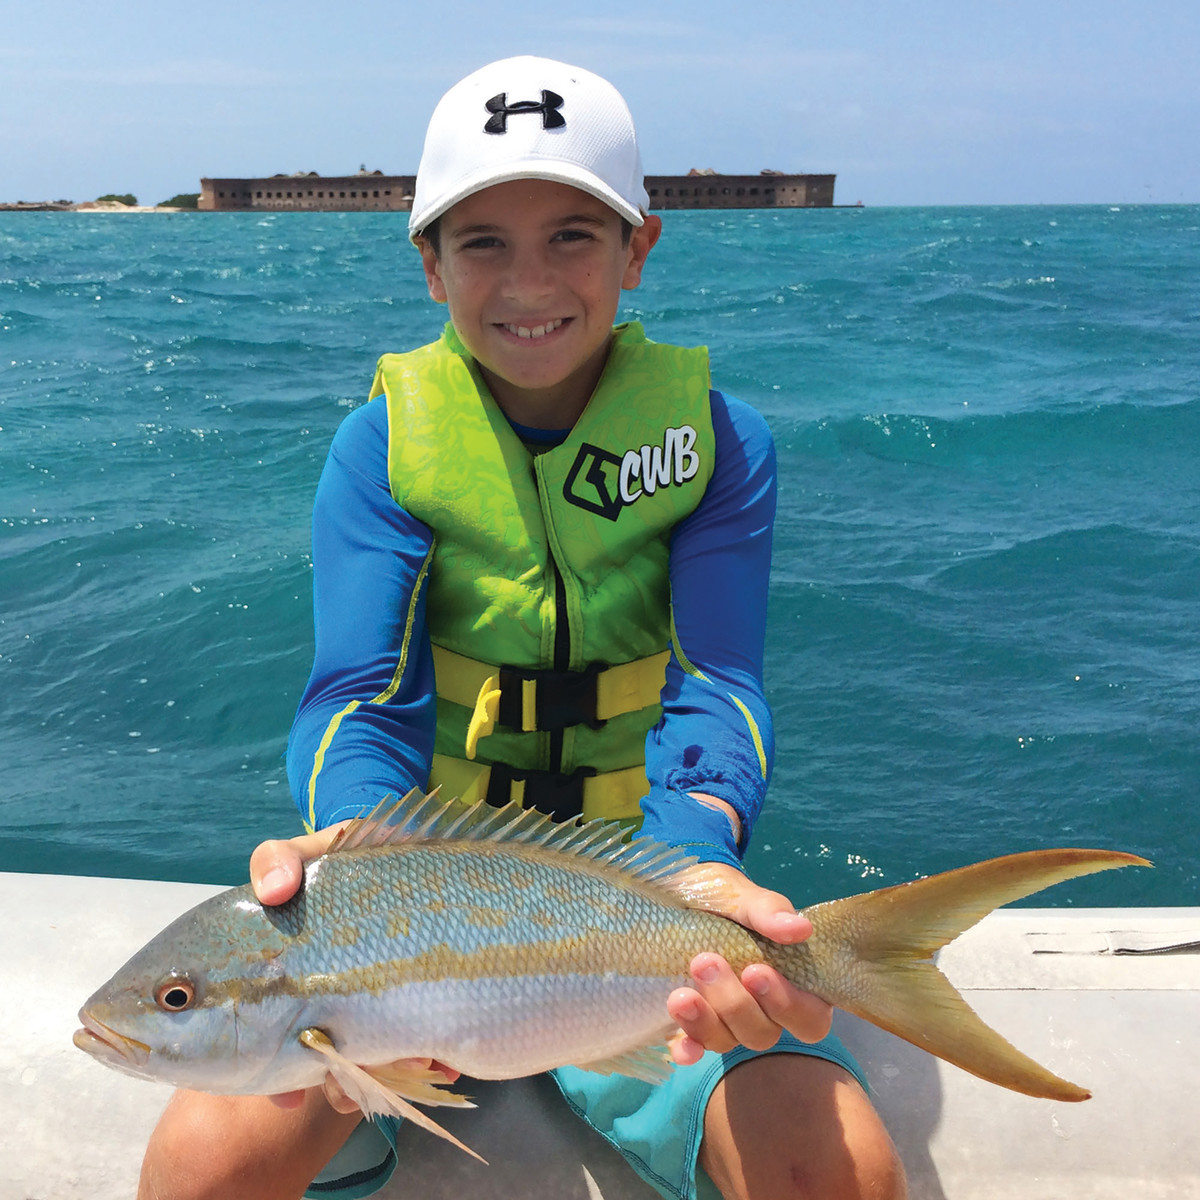 Corey catches a keeper yellowtail snapper with Fort Jefferson in the background.